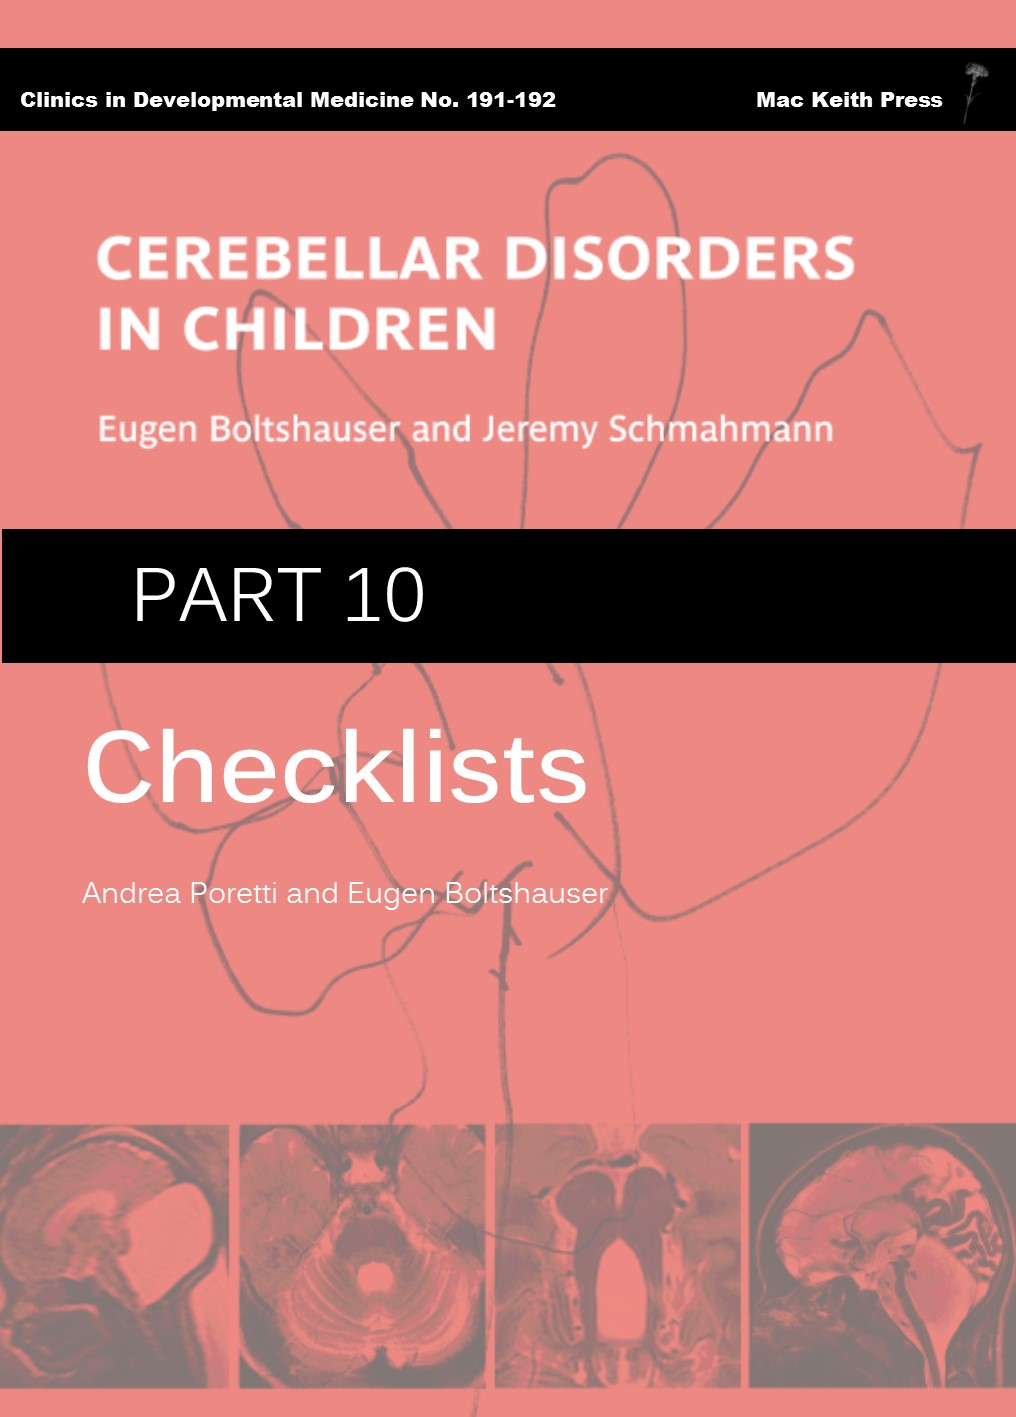 Cerebellar Disorders in Children - Part 10: Checklists COVER